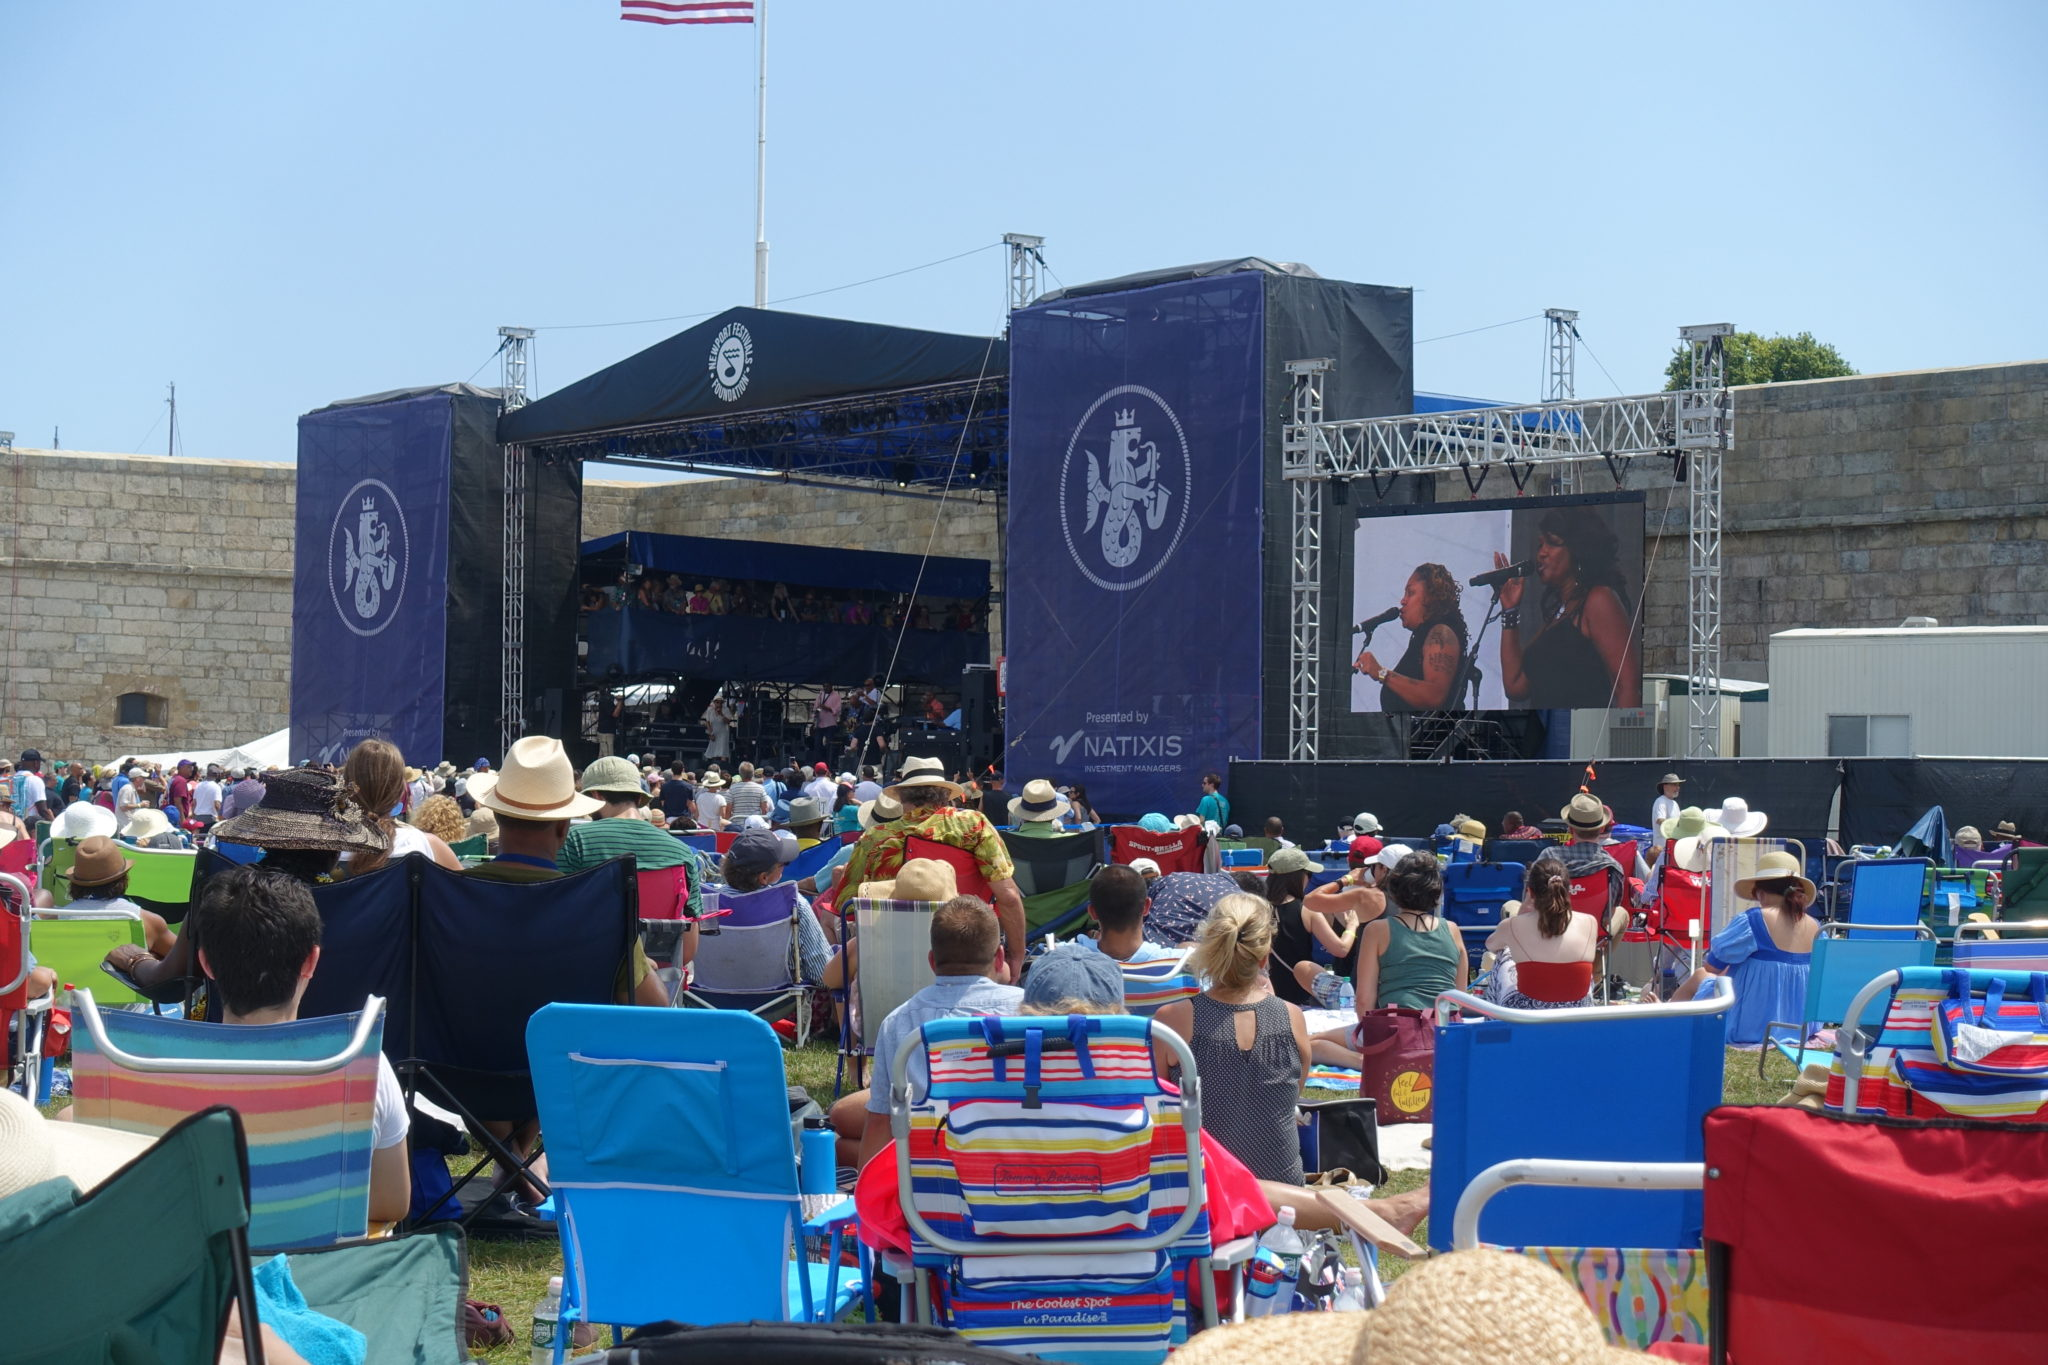 Festival Recap: The Newport Jazz Festival at 65 - Alive and